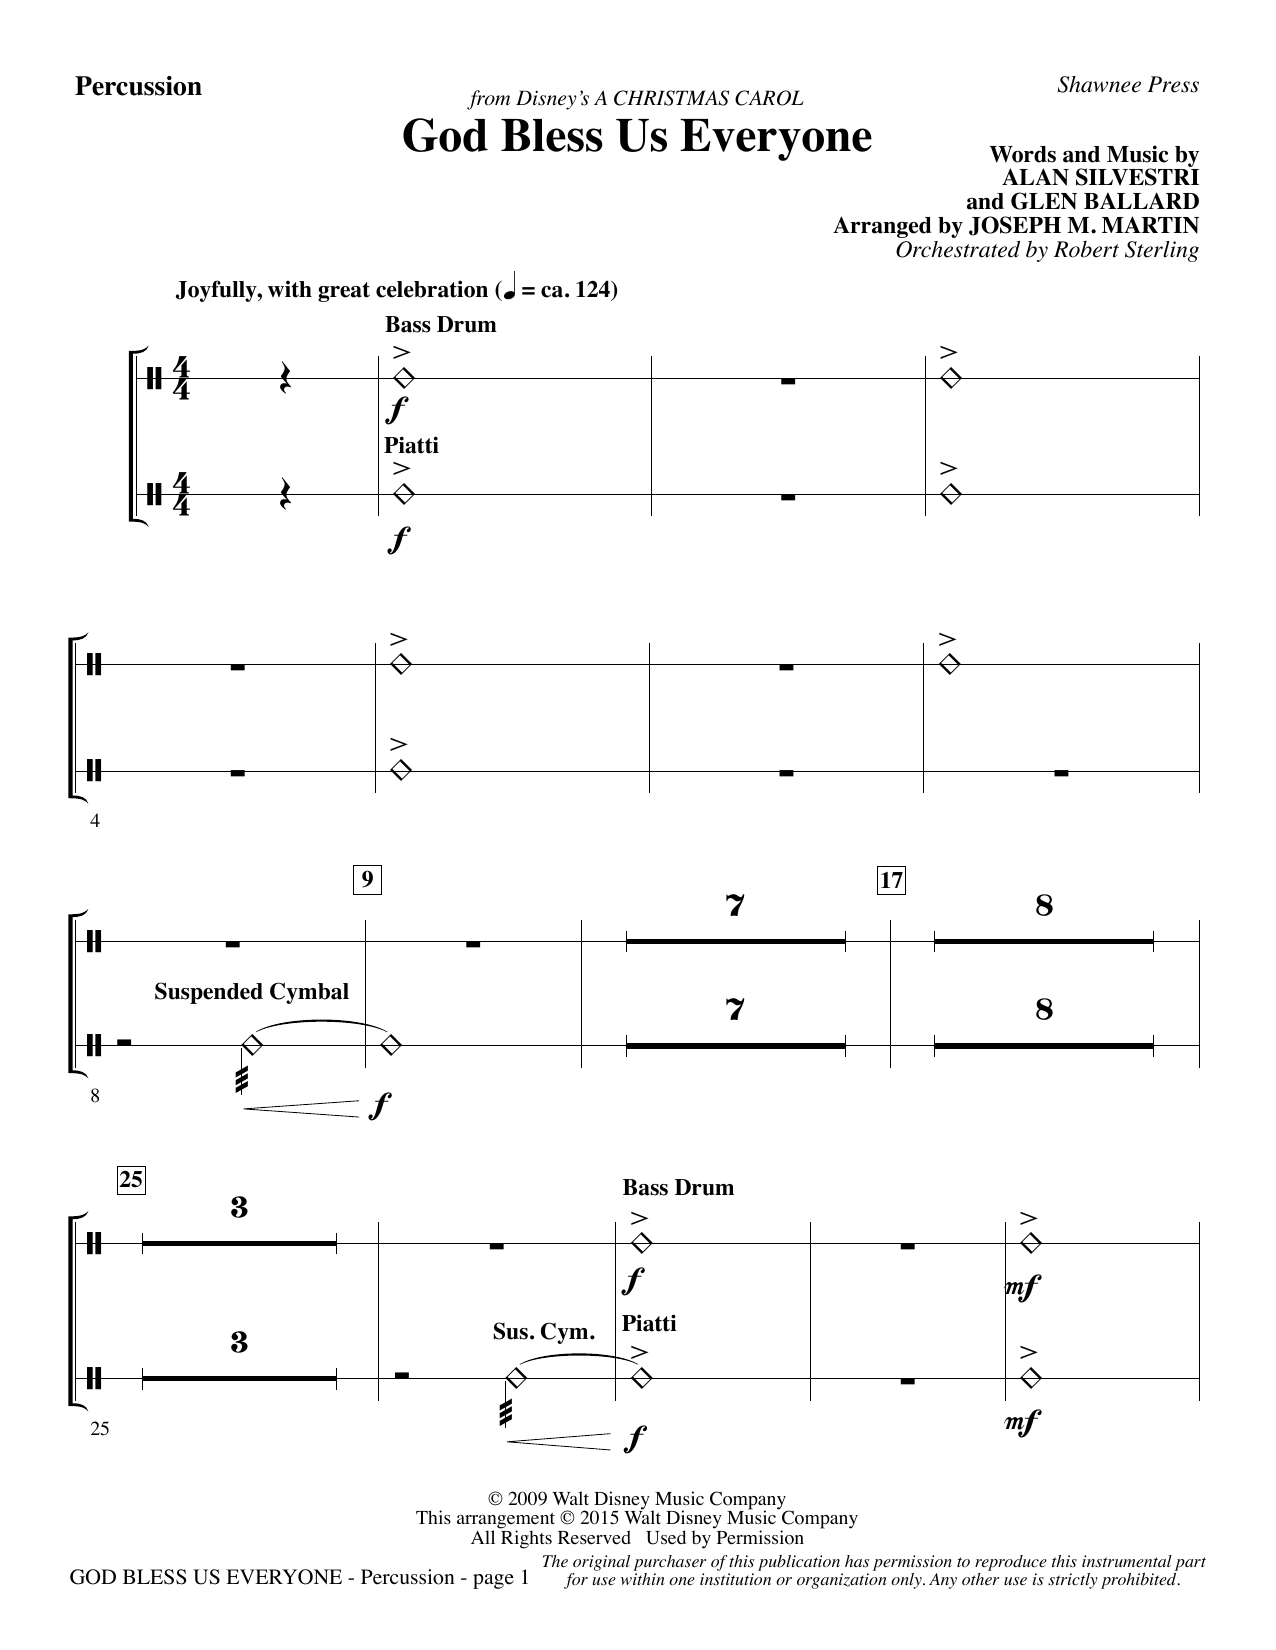 God Bless Us Everyone (from Disney's A Christmas Carol) - Percussion sheet music